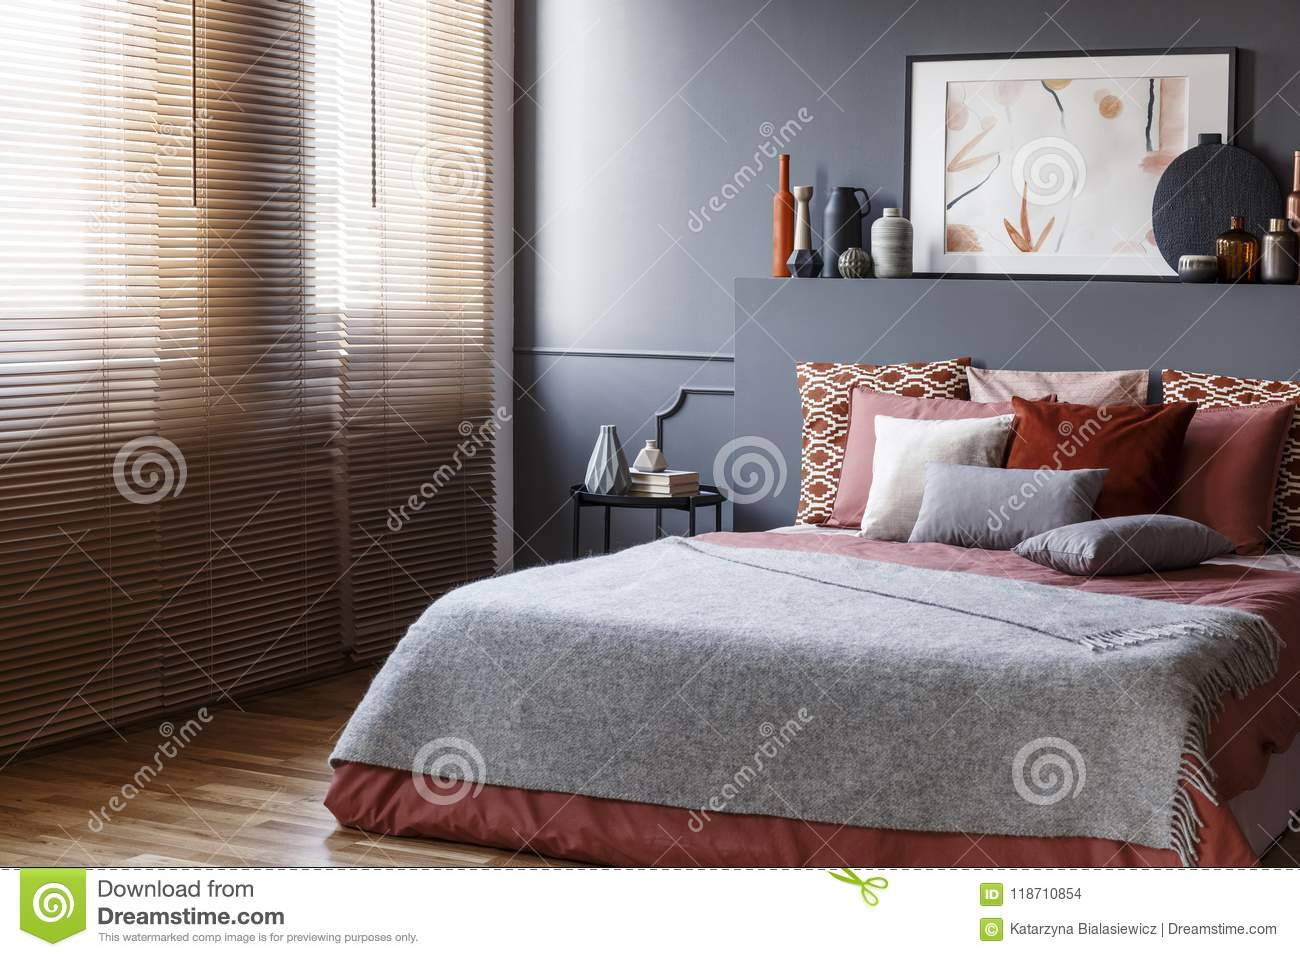 Window Blinds In A Bedroom Interior With A King Size Bed, Cushio